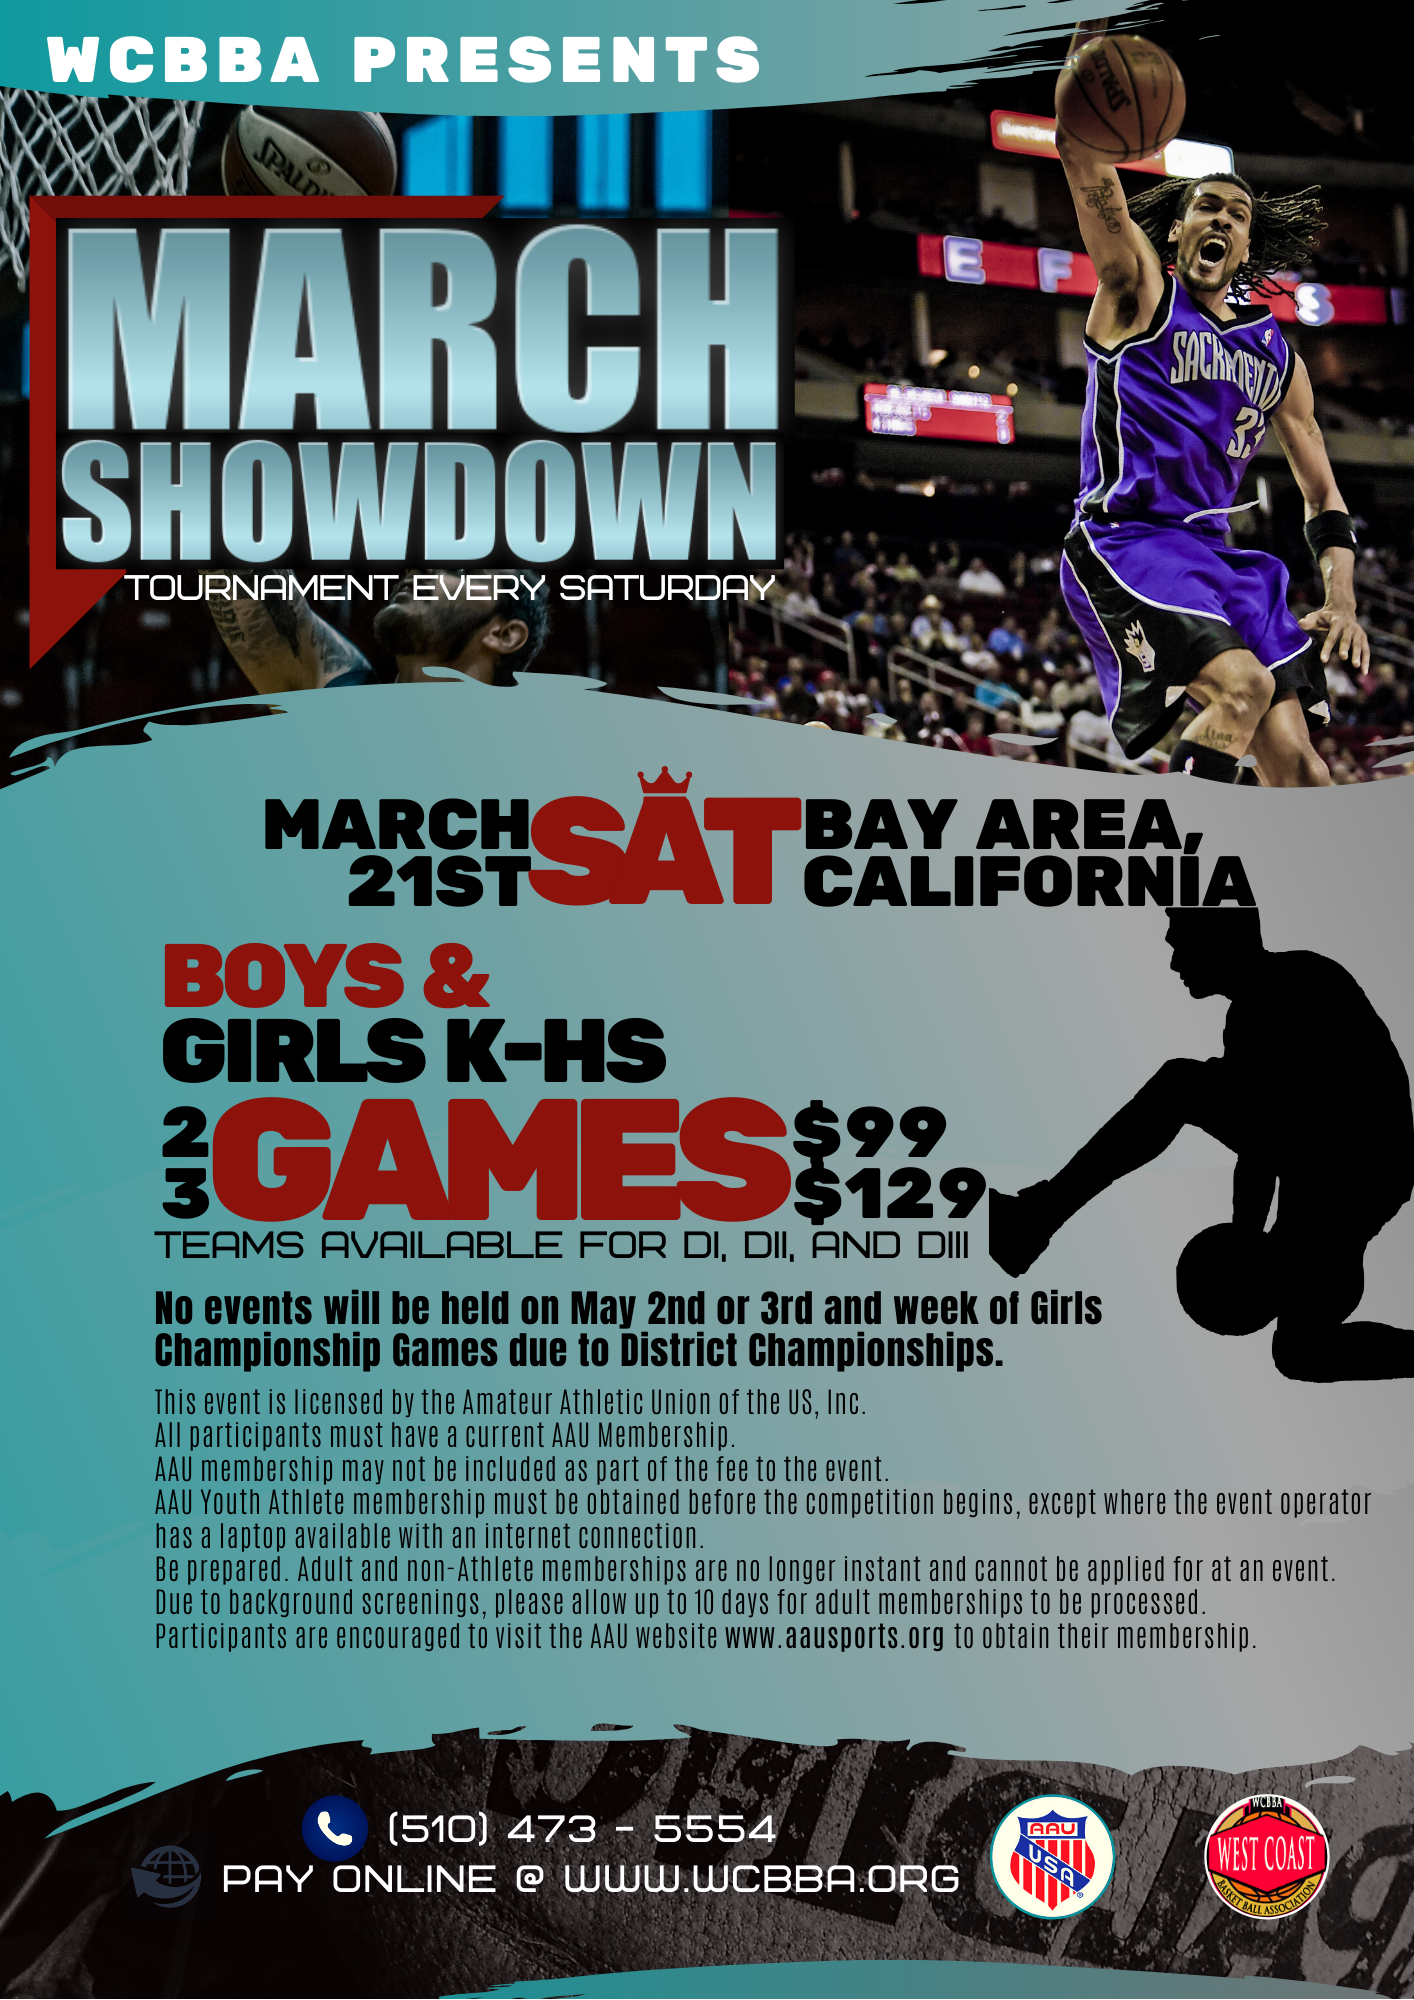 WCBBA Saturday Tournament for only $99 per Team